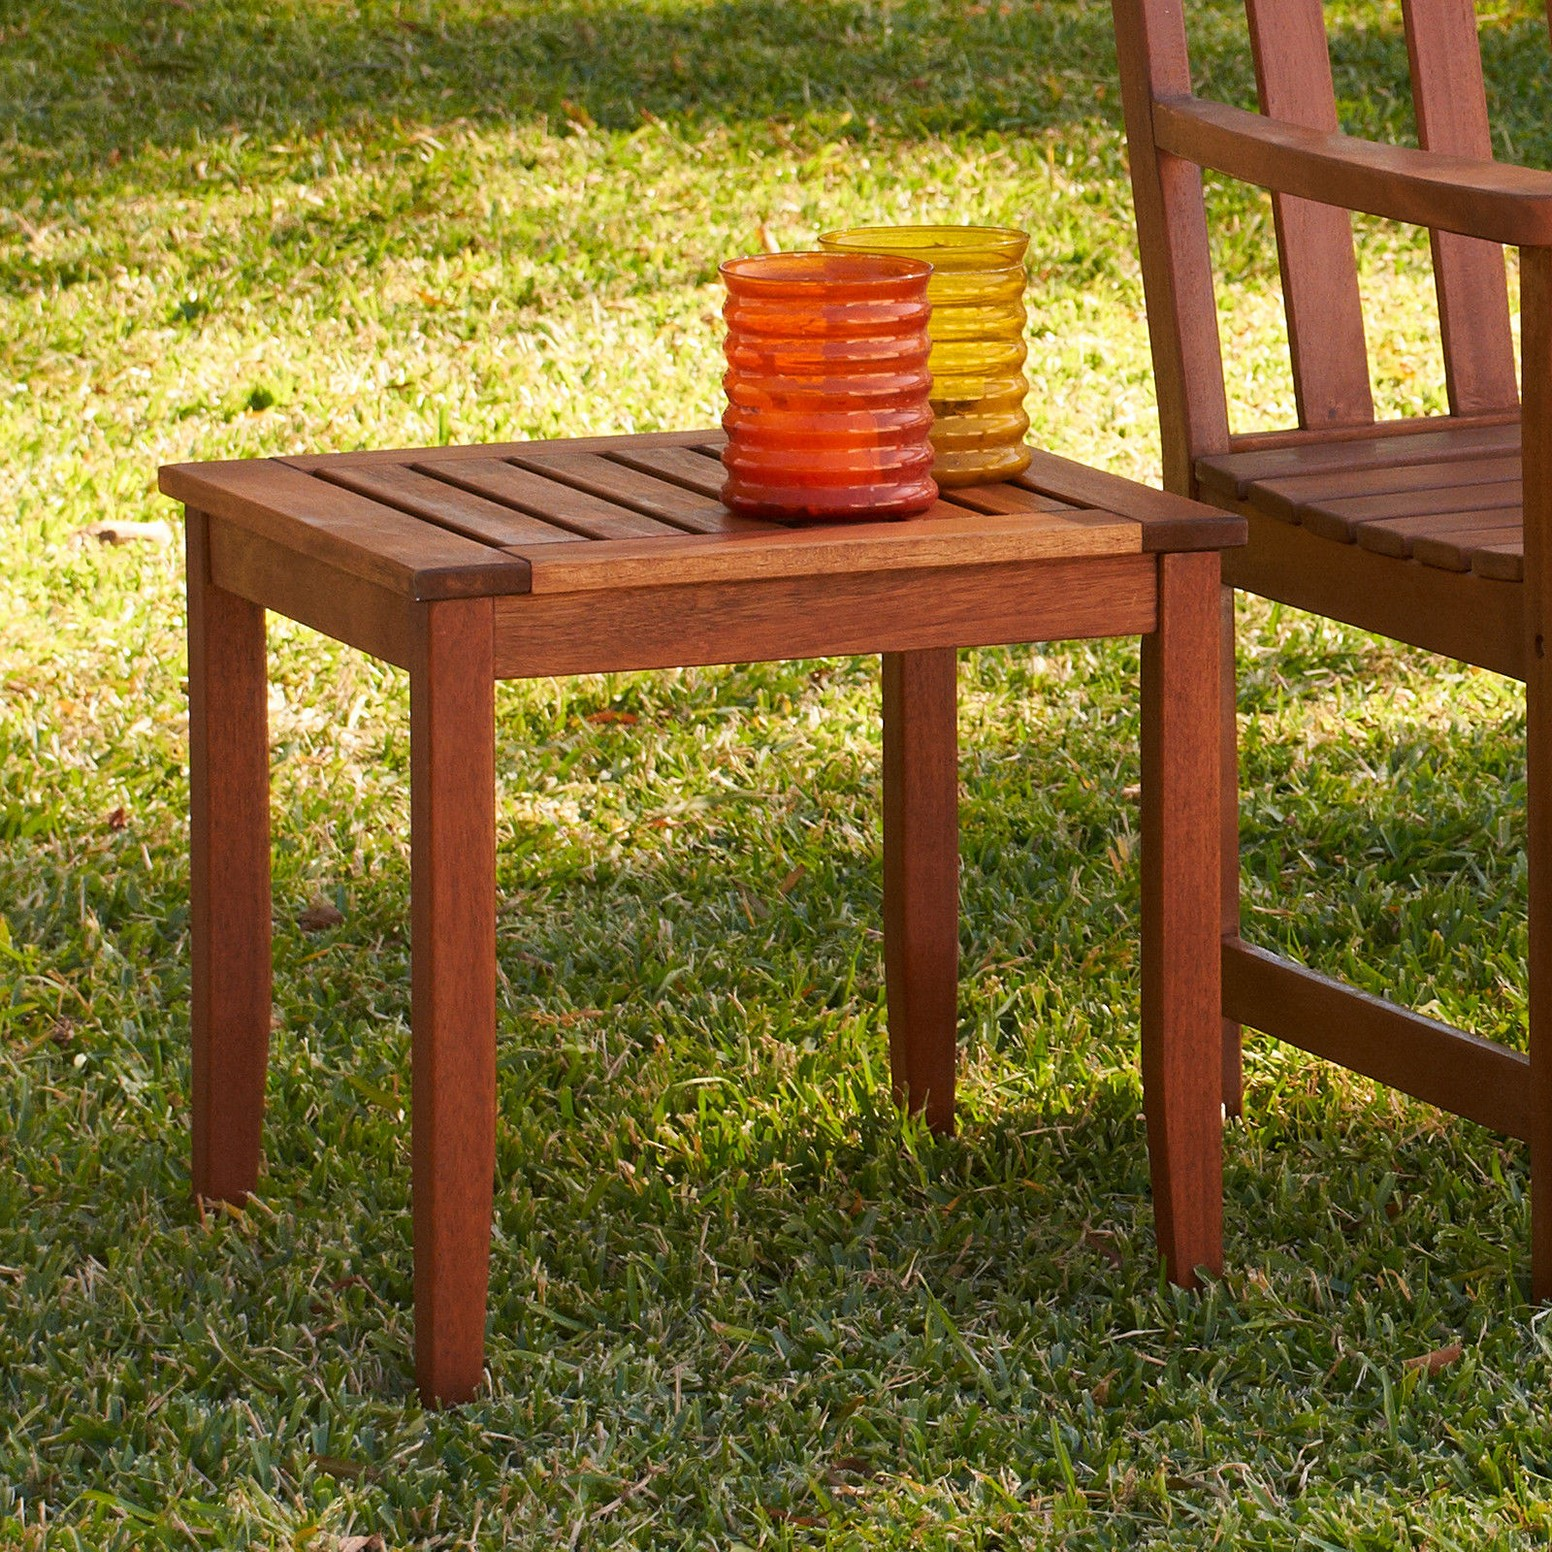 patio accent table darlee series cast aluminum end diy outdoor tables the furniture collapsible coffee ikea whole round tablecloths wicker sofa bedroom edmonton changing dresser